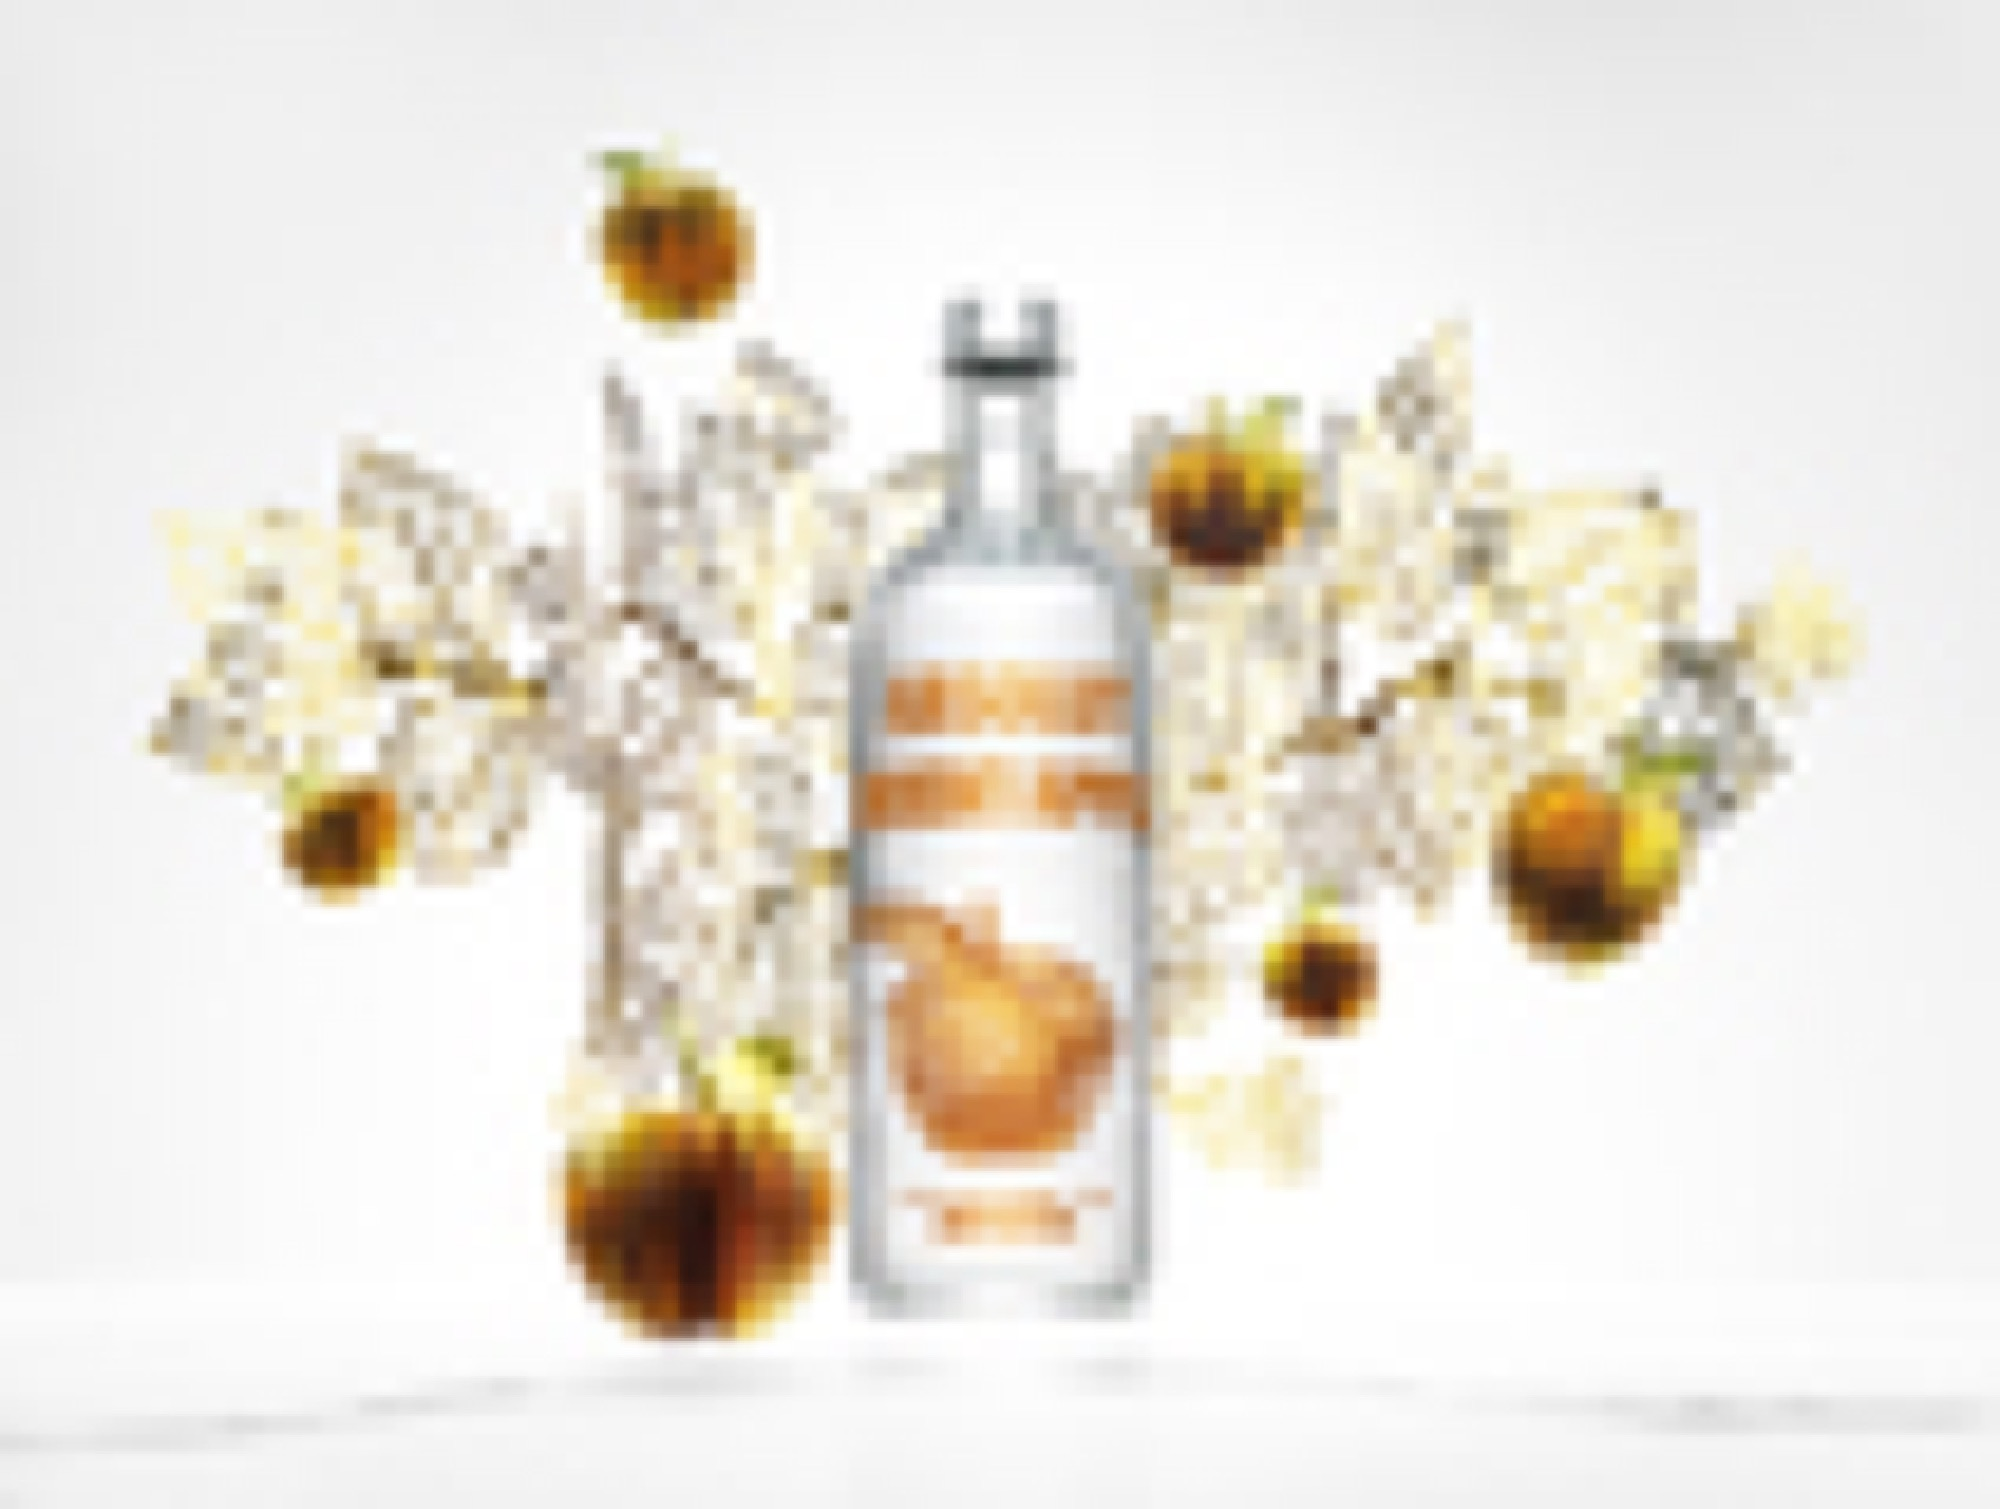 Absolut_OrientApple-Bottle1